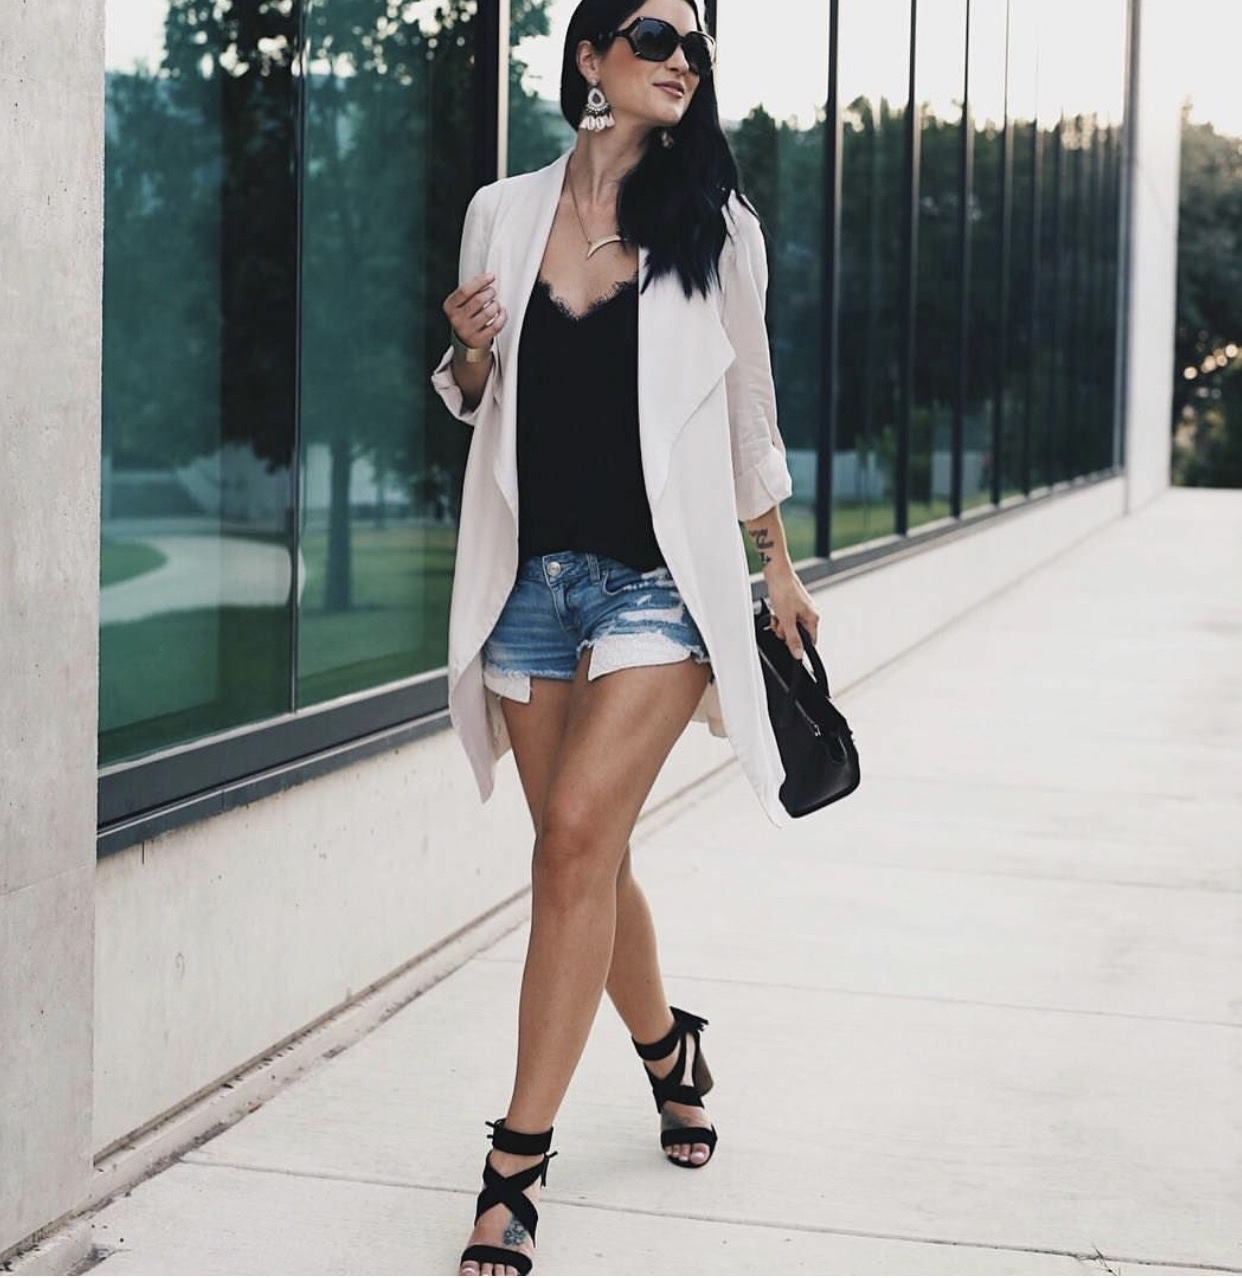 Instagram Outfit Roundup - Favorite August Looks | Fall fashion tips | Fall outfit ideas | Fall style tips | what to wear for Fall | cold weather fashion | fashion for fall | style tips for fall | outfit ideas for fall || Dressed to Kill